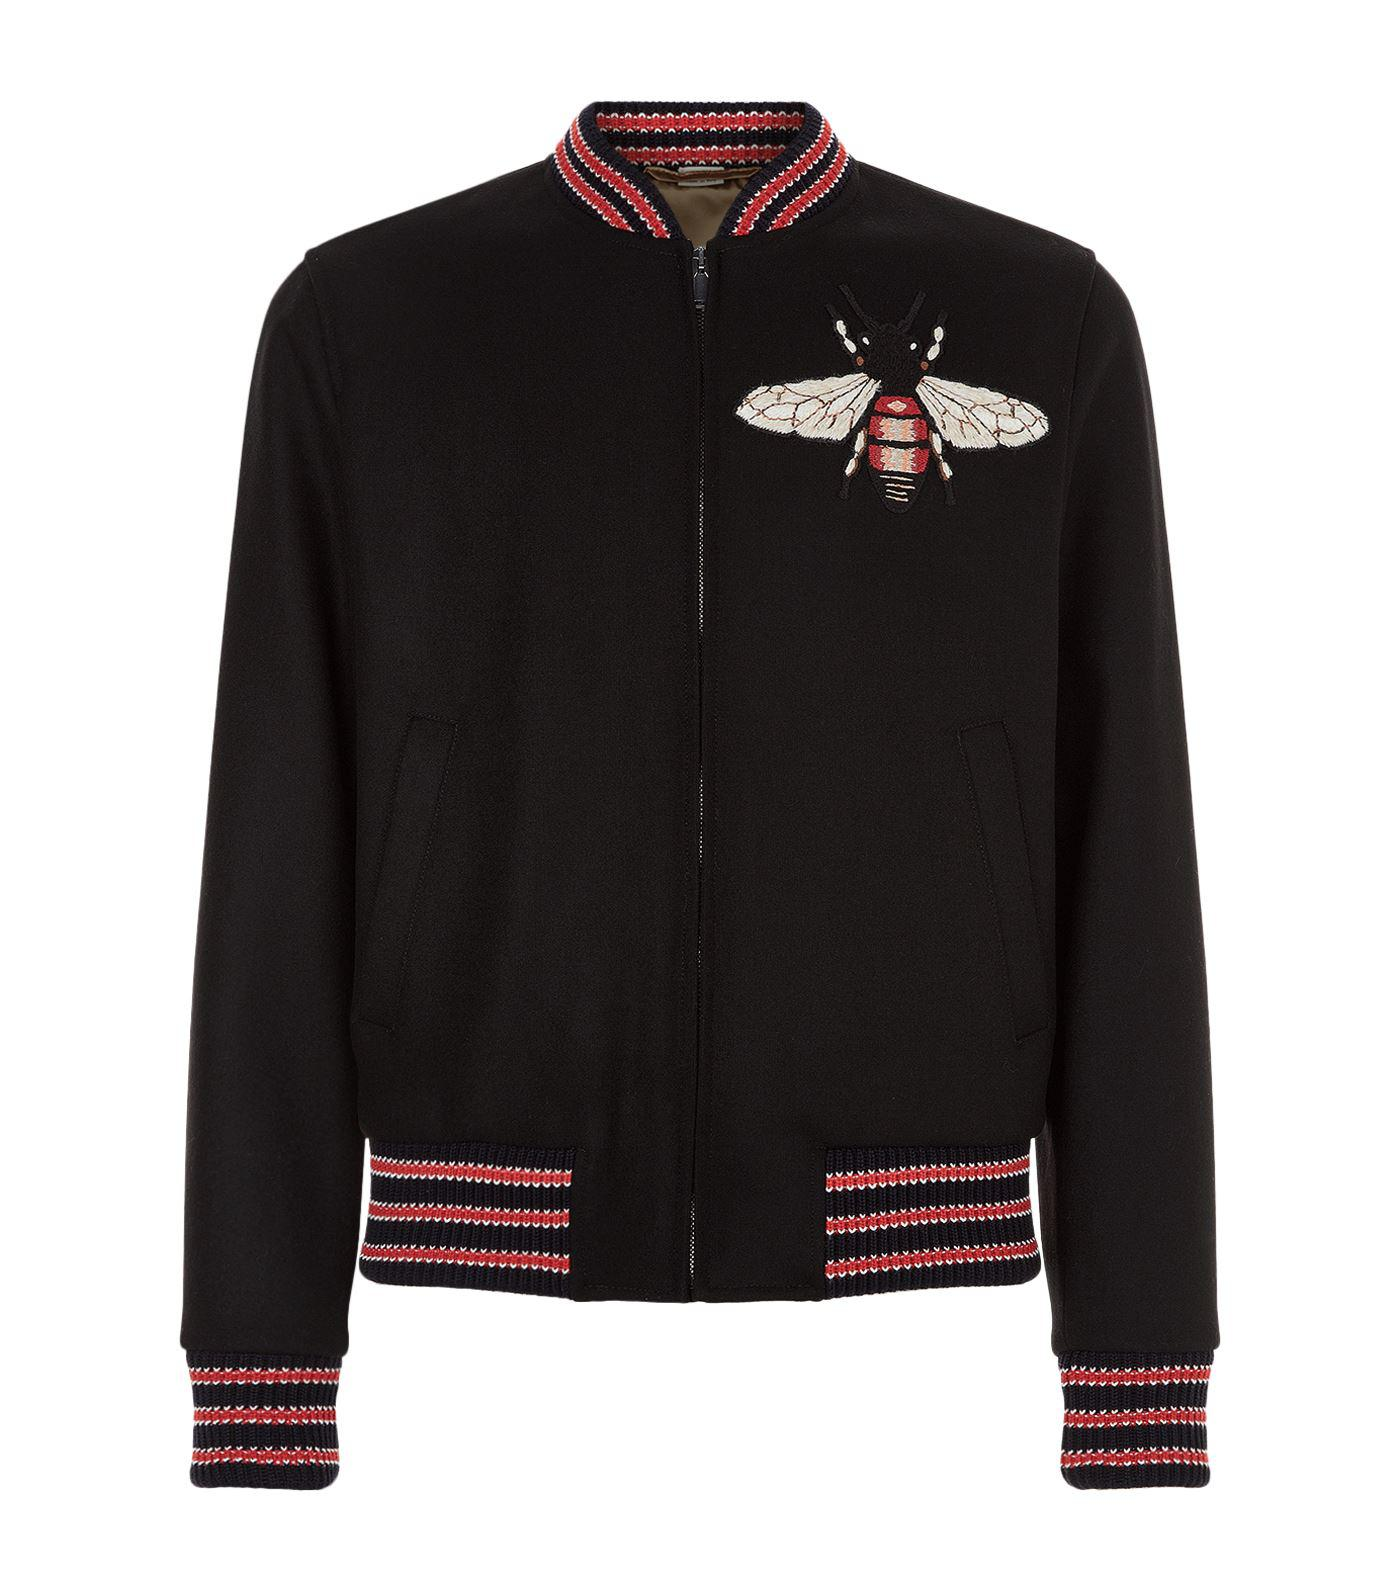 74c90688e Gucci Embroidered Bumble Bee Jacket in Black - Lyst